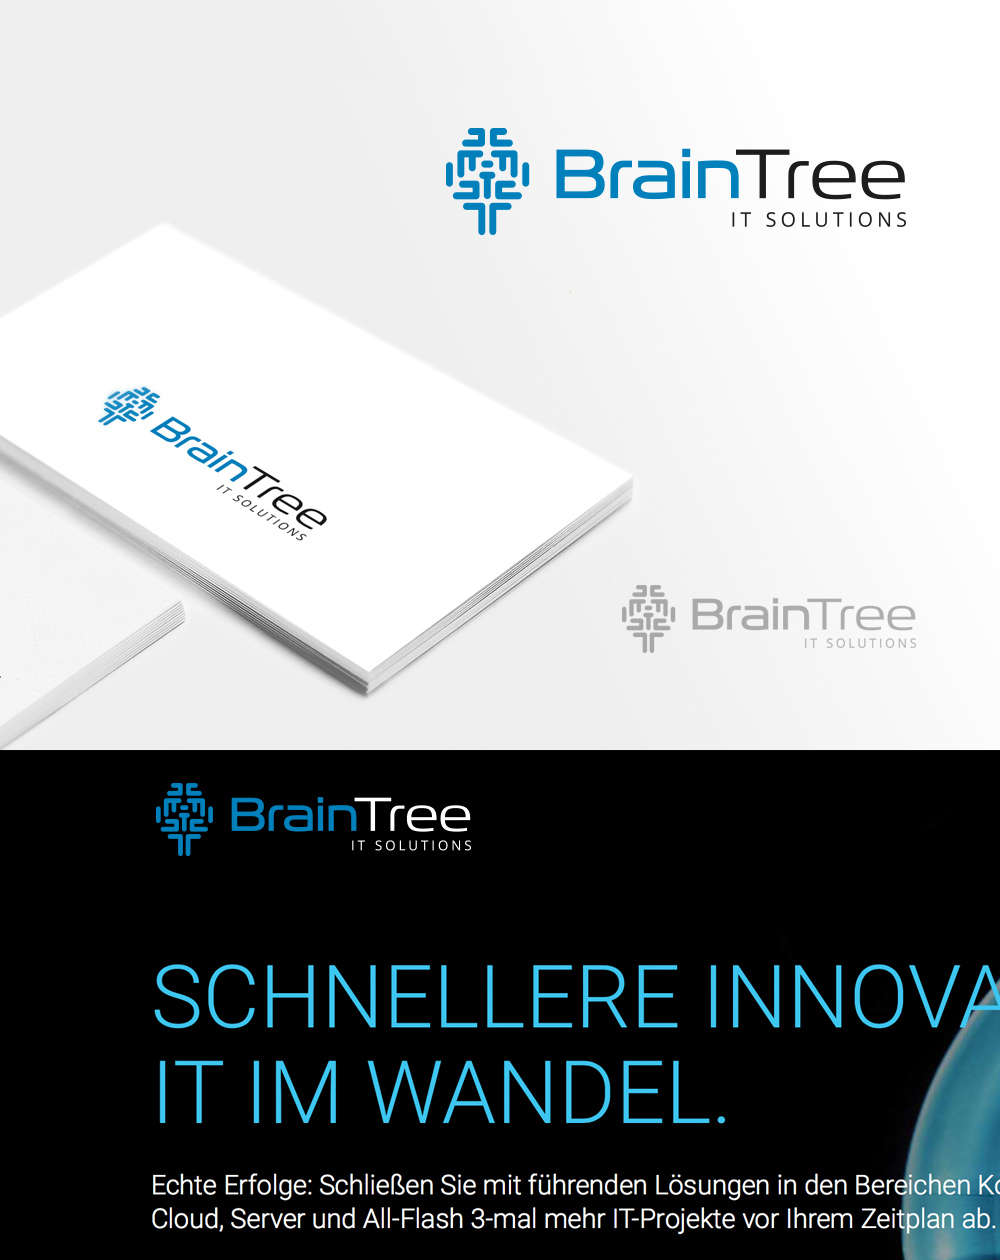 Corporate Design für BrainTree IT Solutions